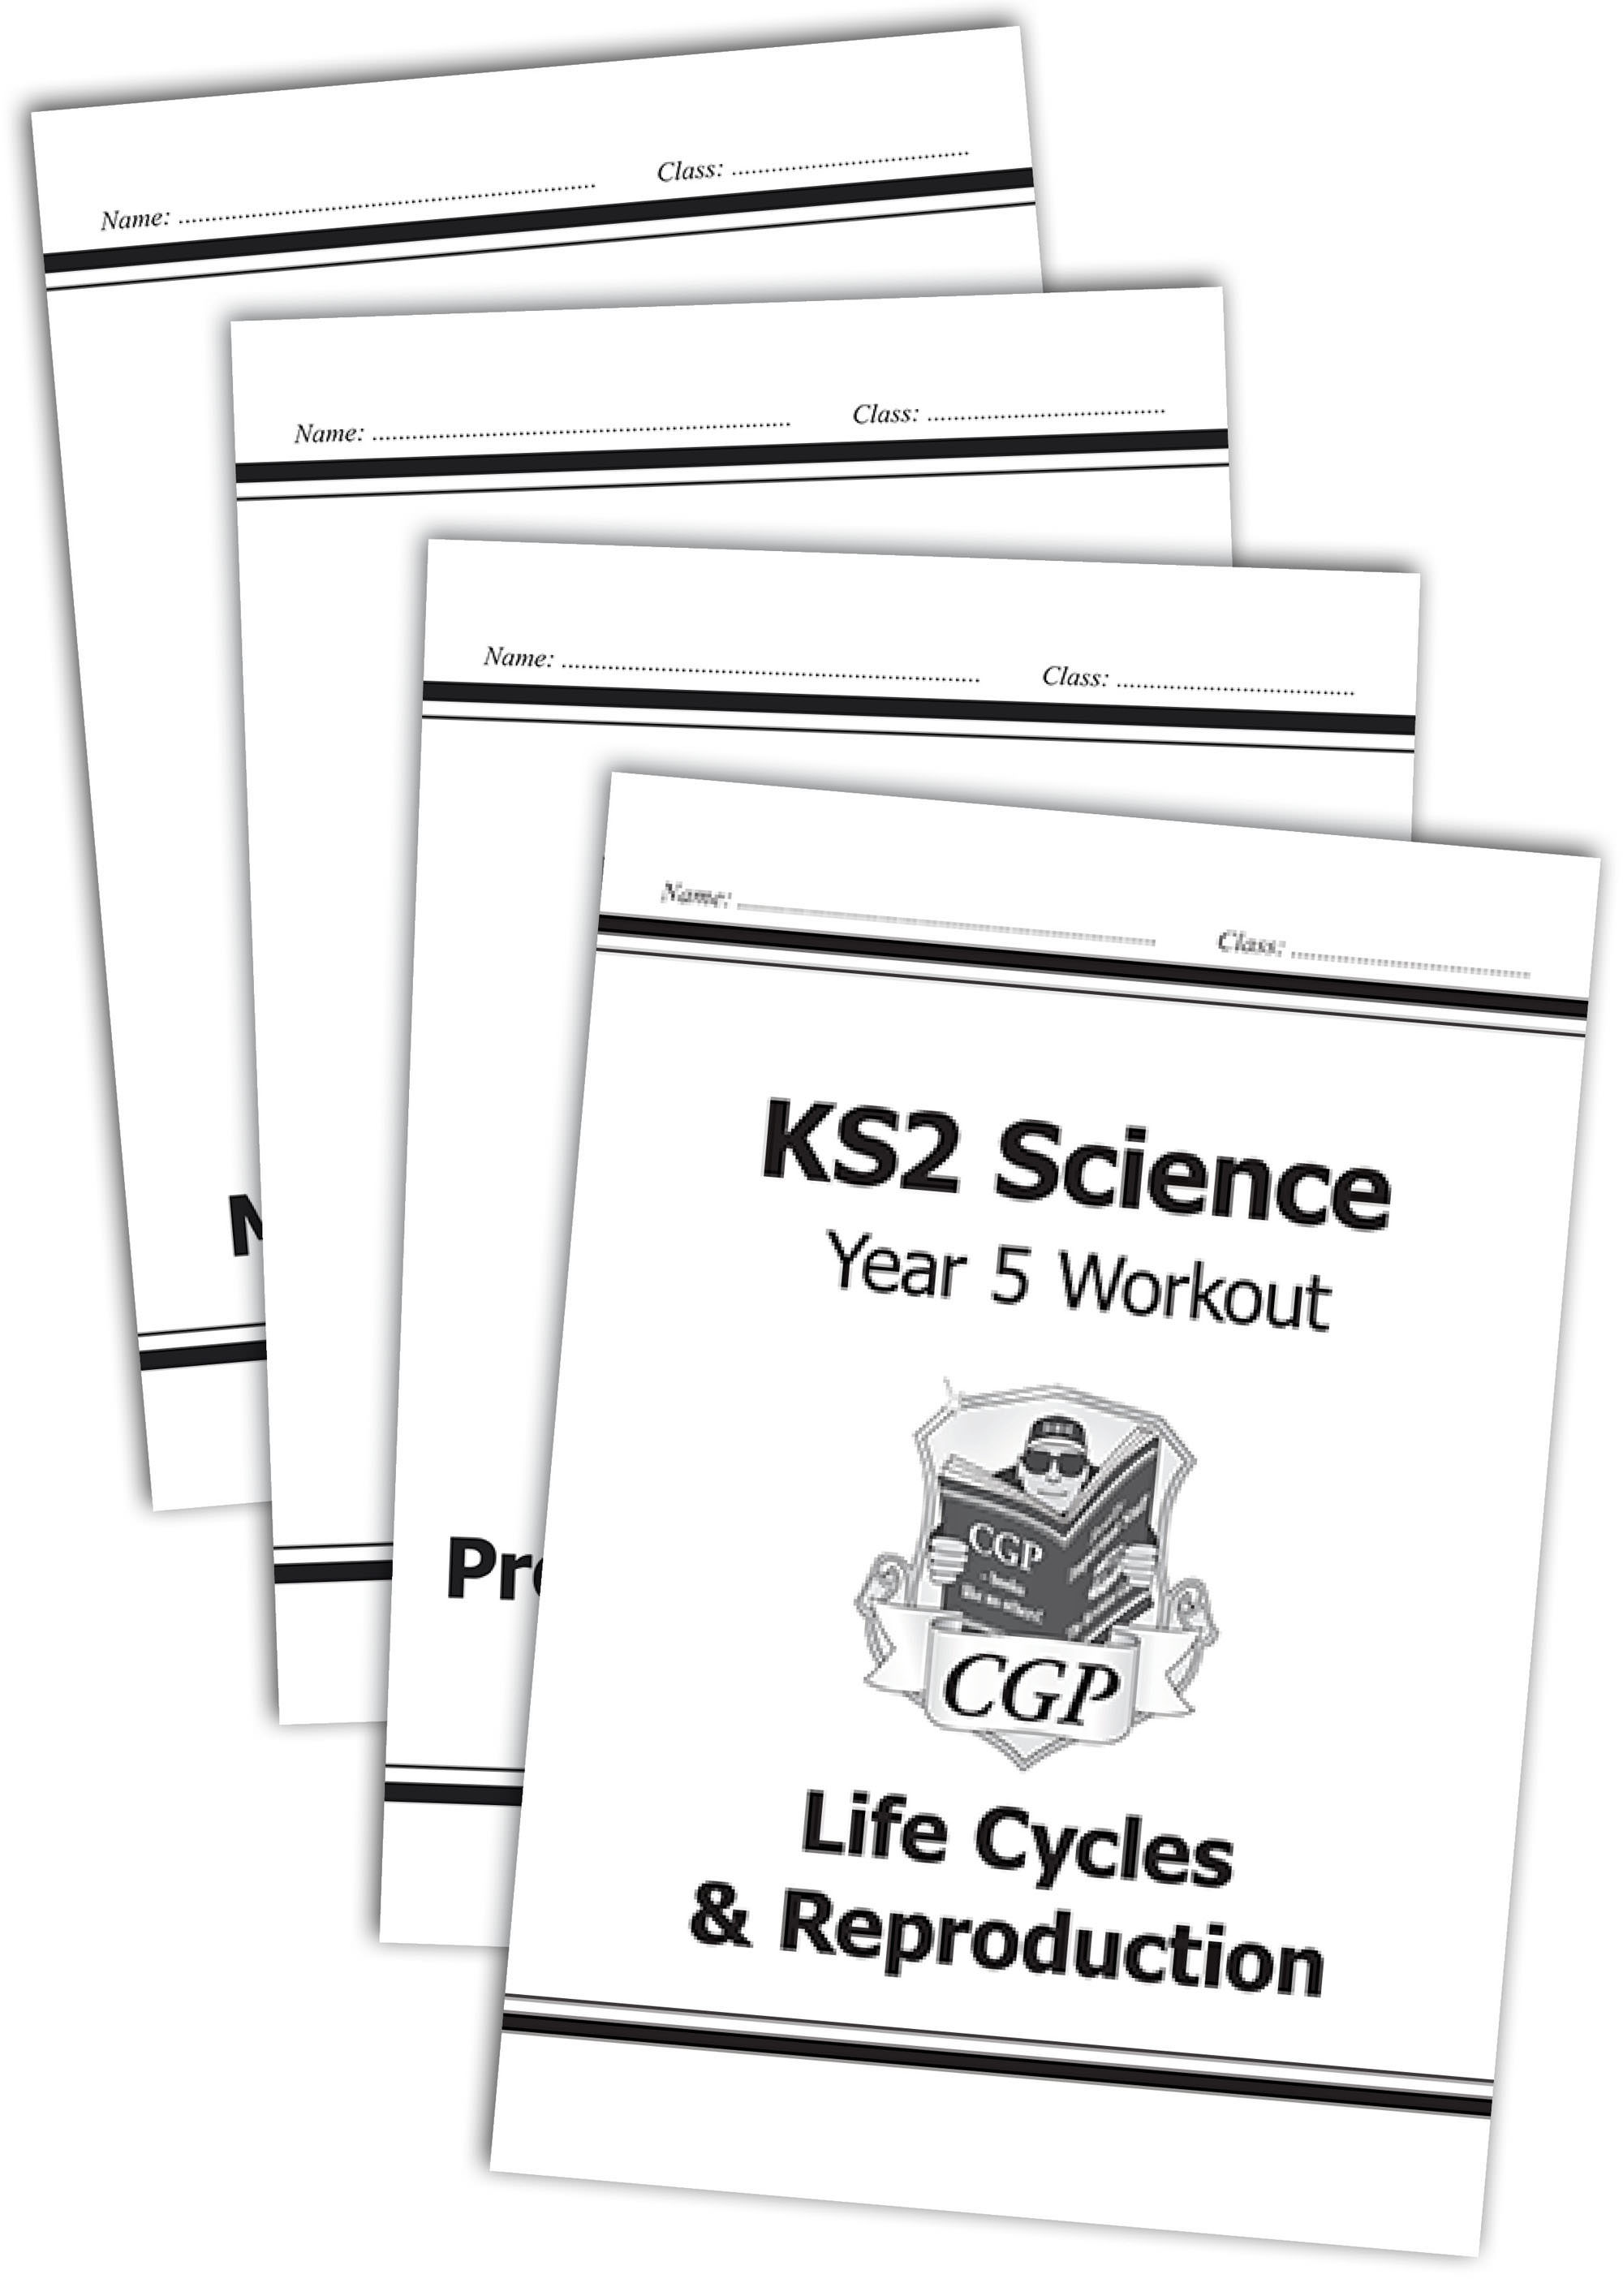 SWB522 - KS2 Science Year 5 Workout Bundle